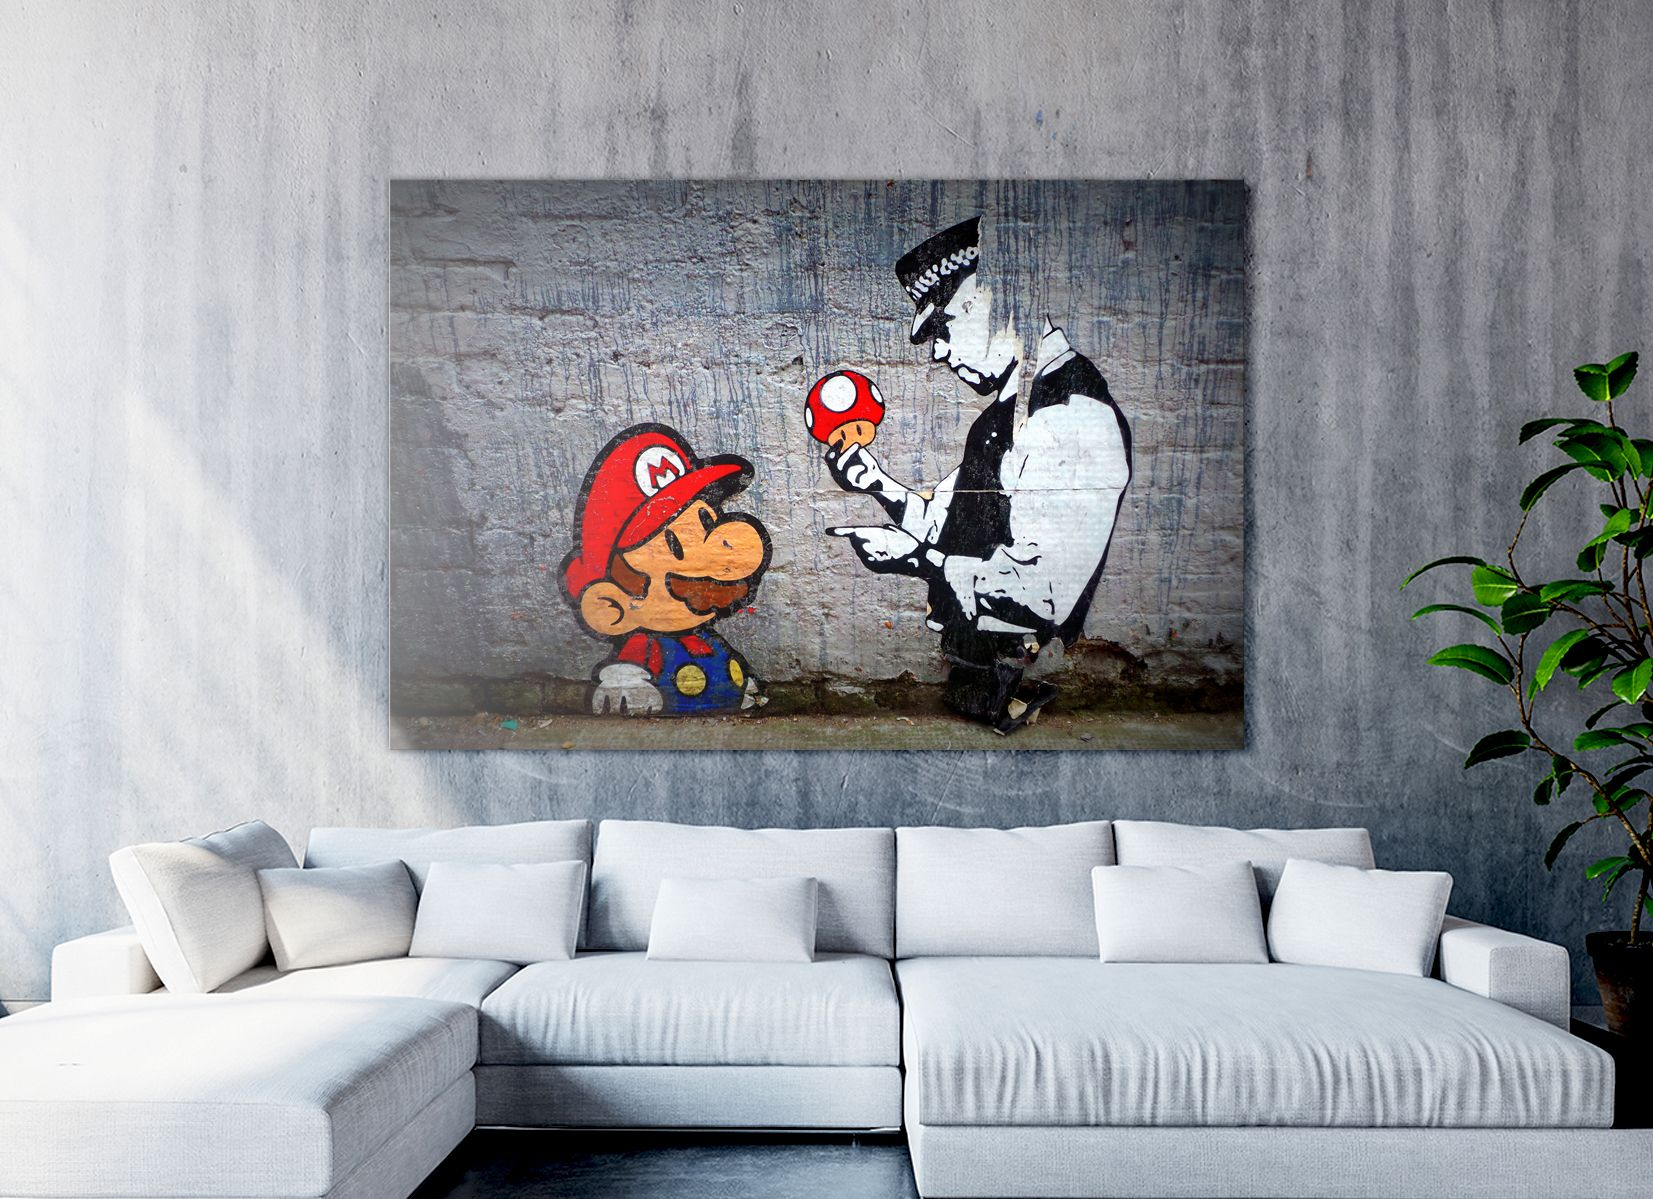 Banksy Mario Canvas Banksy Super Mario Wall Art Canvas Etsy In 2020 Banksy Wall Art Canvas Wall Art Banksy Posters